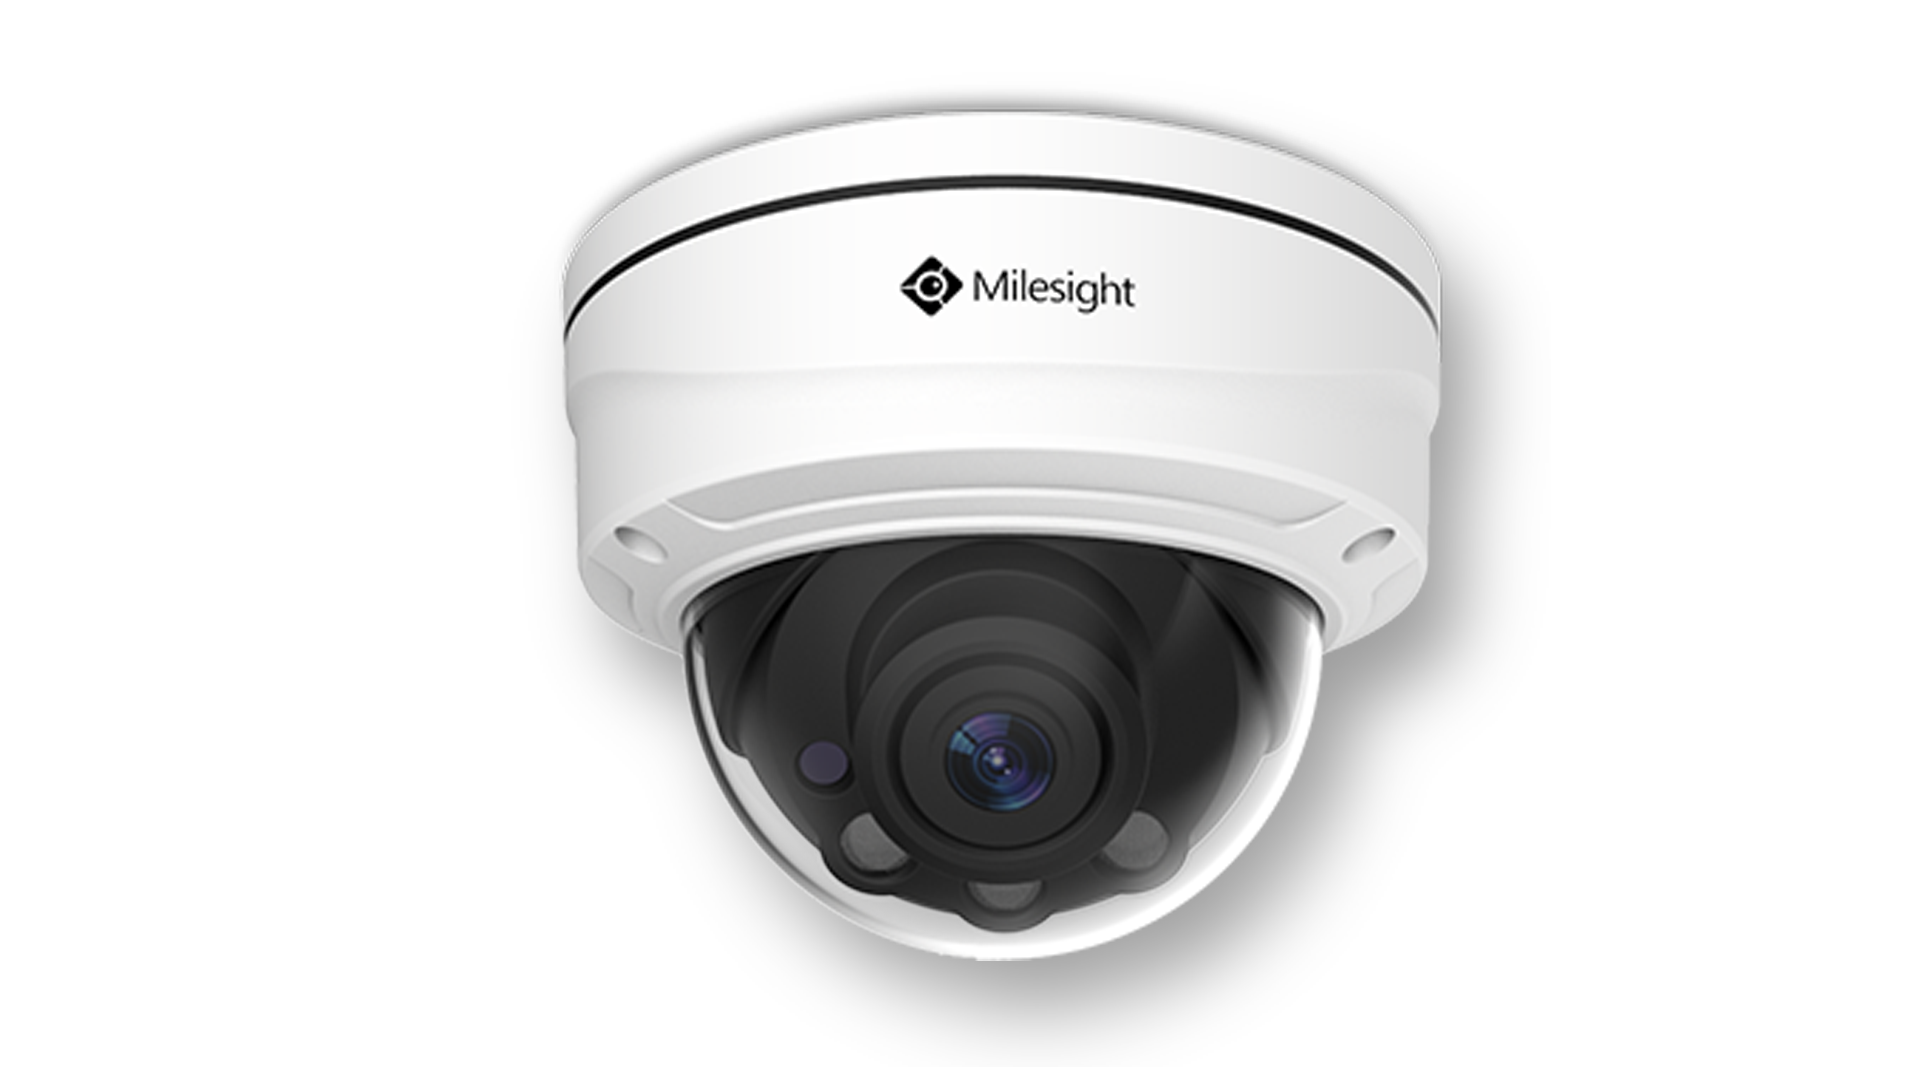 Mile Sight dome camera from the pro series, some of Milesight's best products.